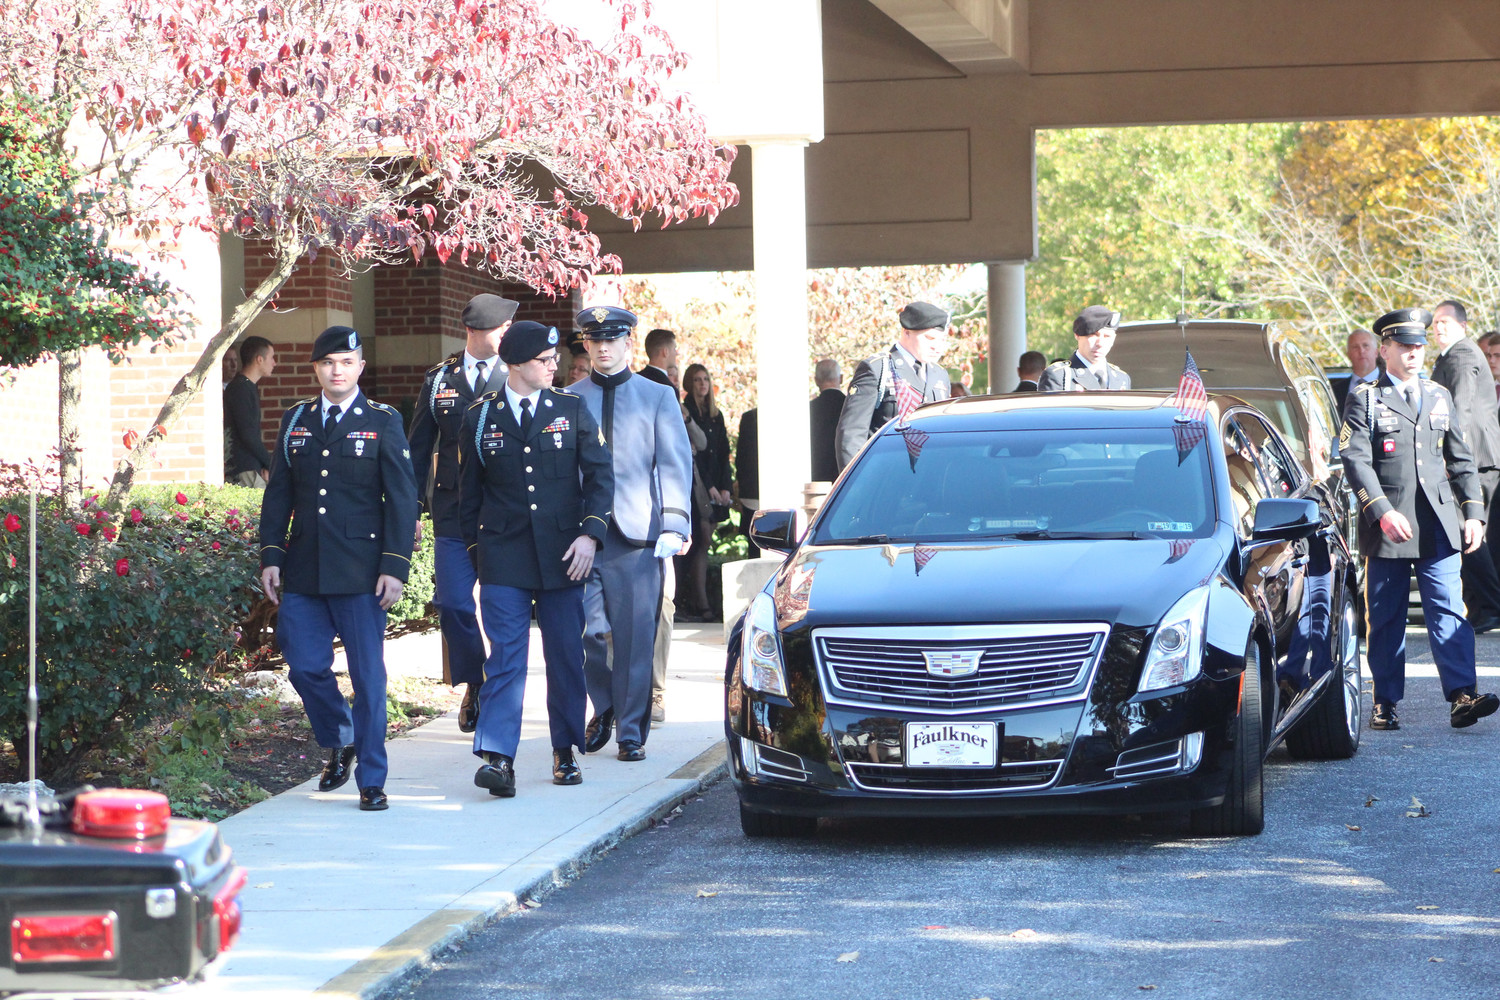 Soldiers walk out of Seven Sorrows of the Blessed Virgin Mary Catholic Church in Middletown following the funeral of Spc. Mason James Guckavan on Nov. 8.